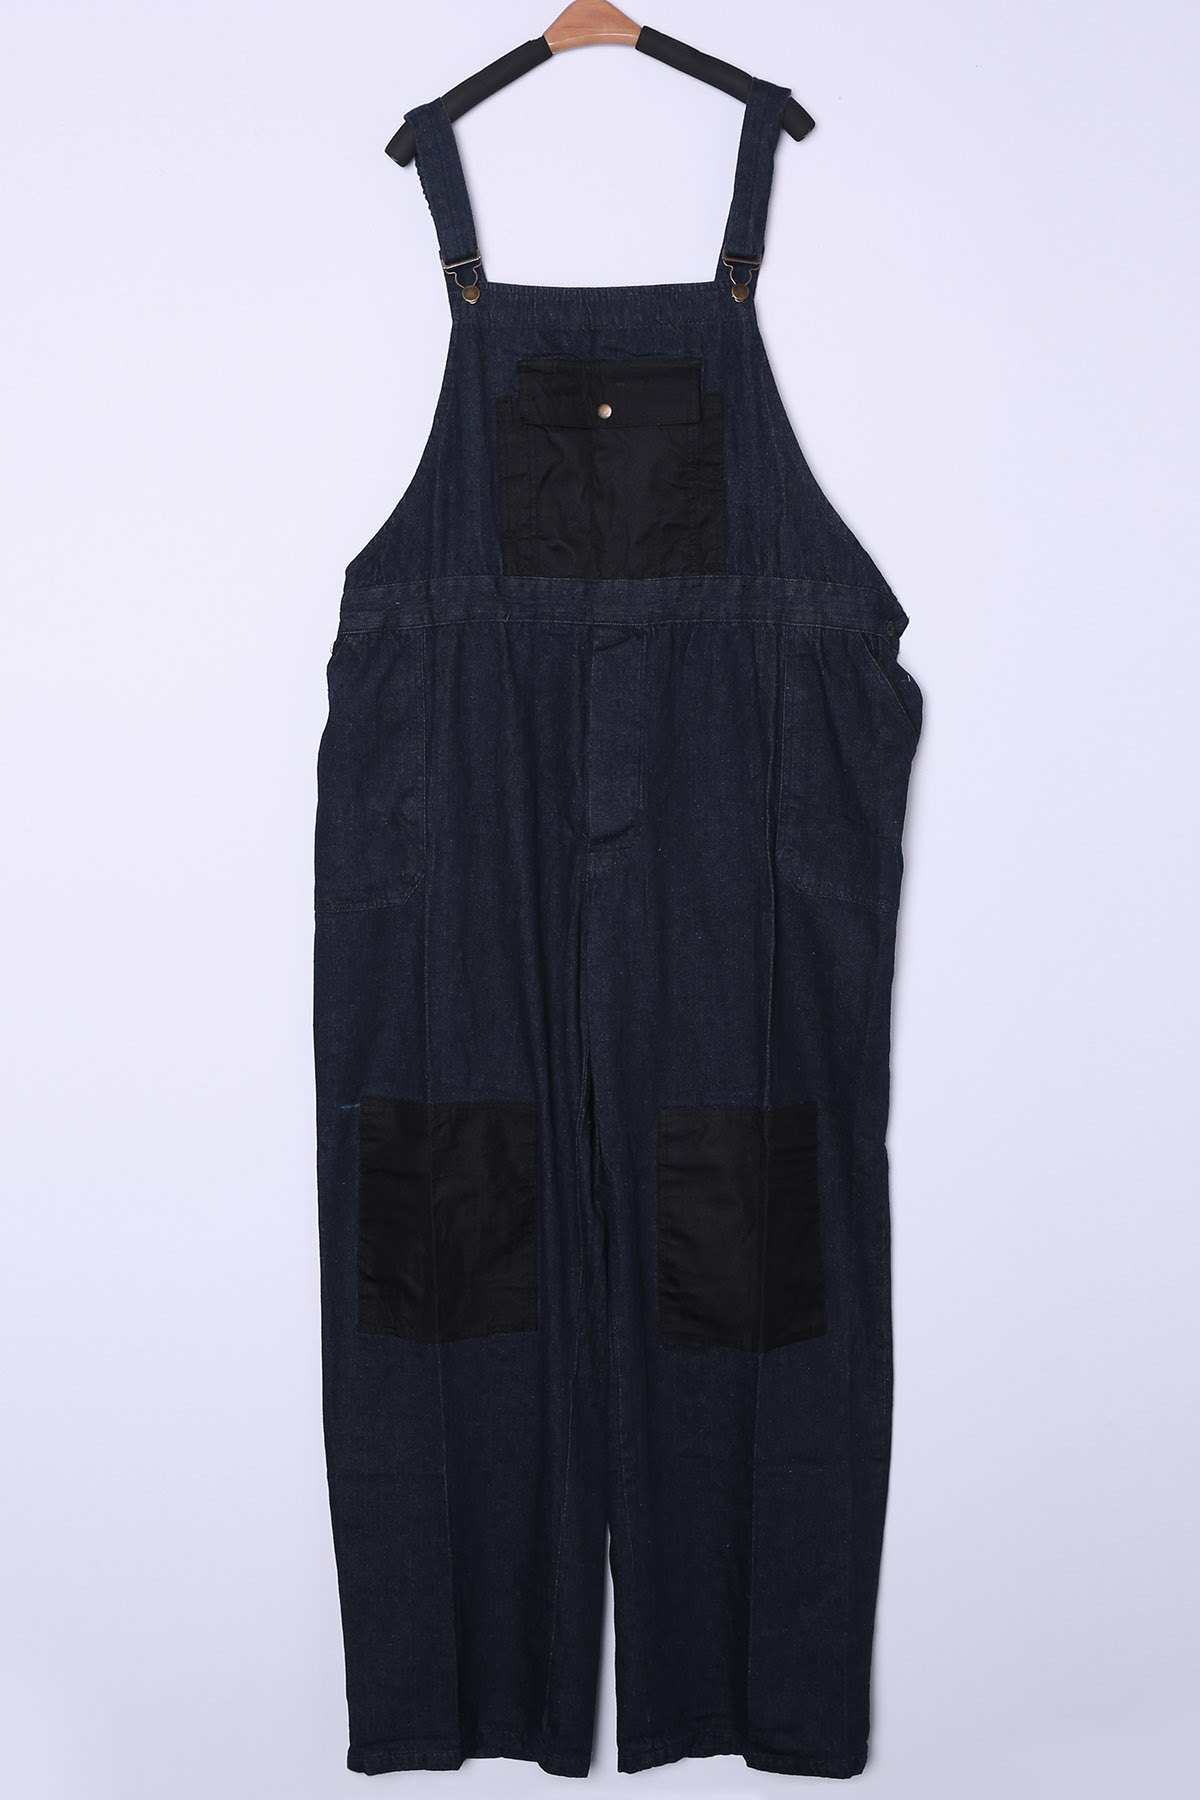 Casual Plus Size Straight Leg Multi-Pocket Loose Fit Men's Denim Overalls - DEEP BLUE ONE SIZE(FIT SIZE XS TO M)